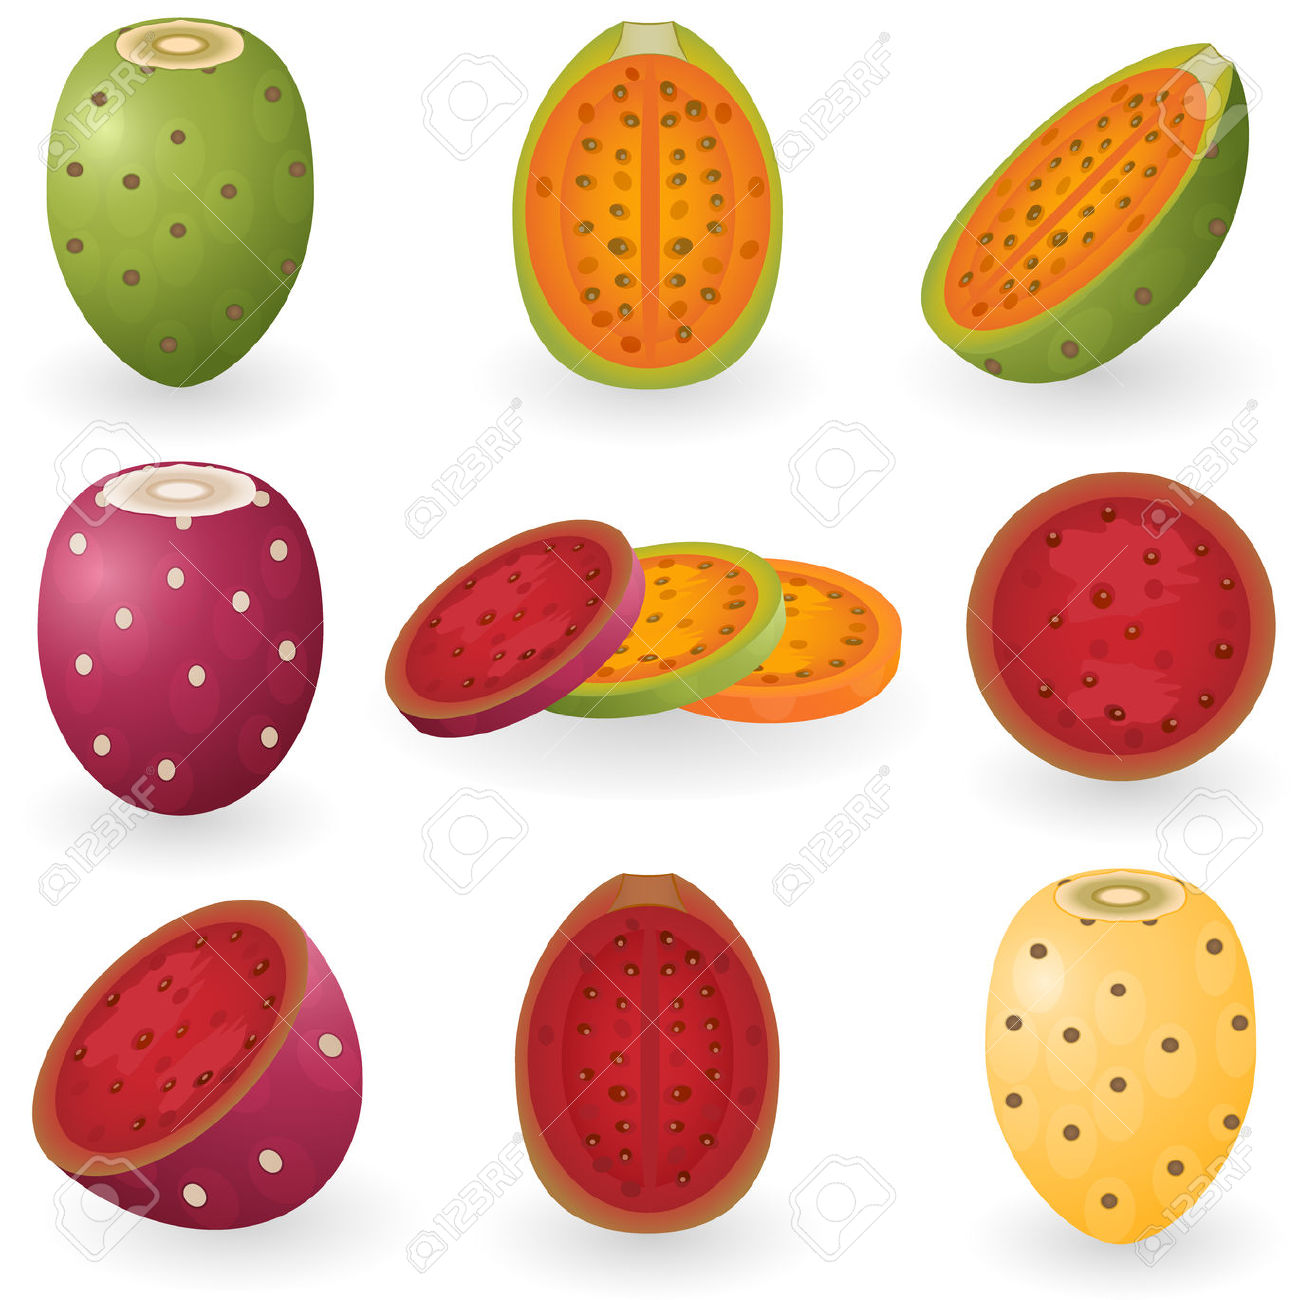 Illustration Of Prickly Pear Fruit Also Known As Opuntia, Cactus.